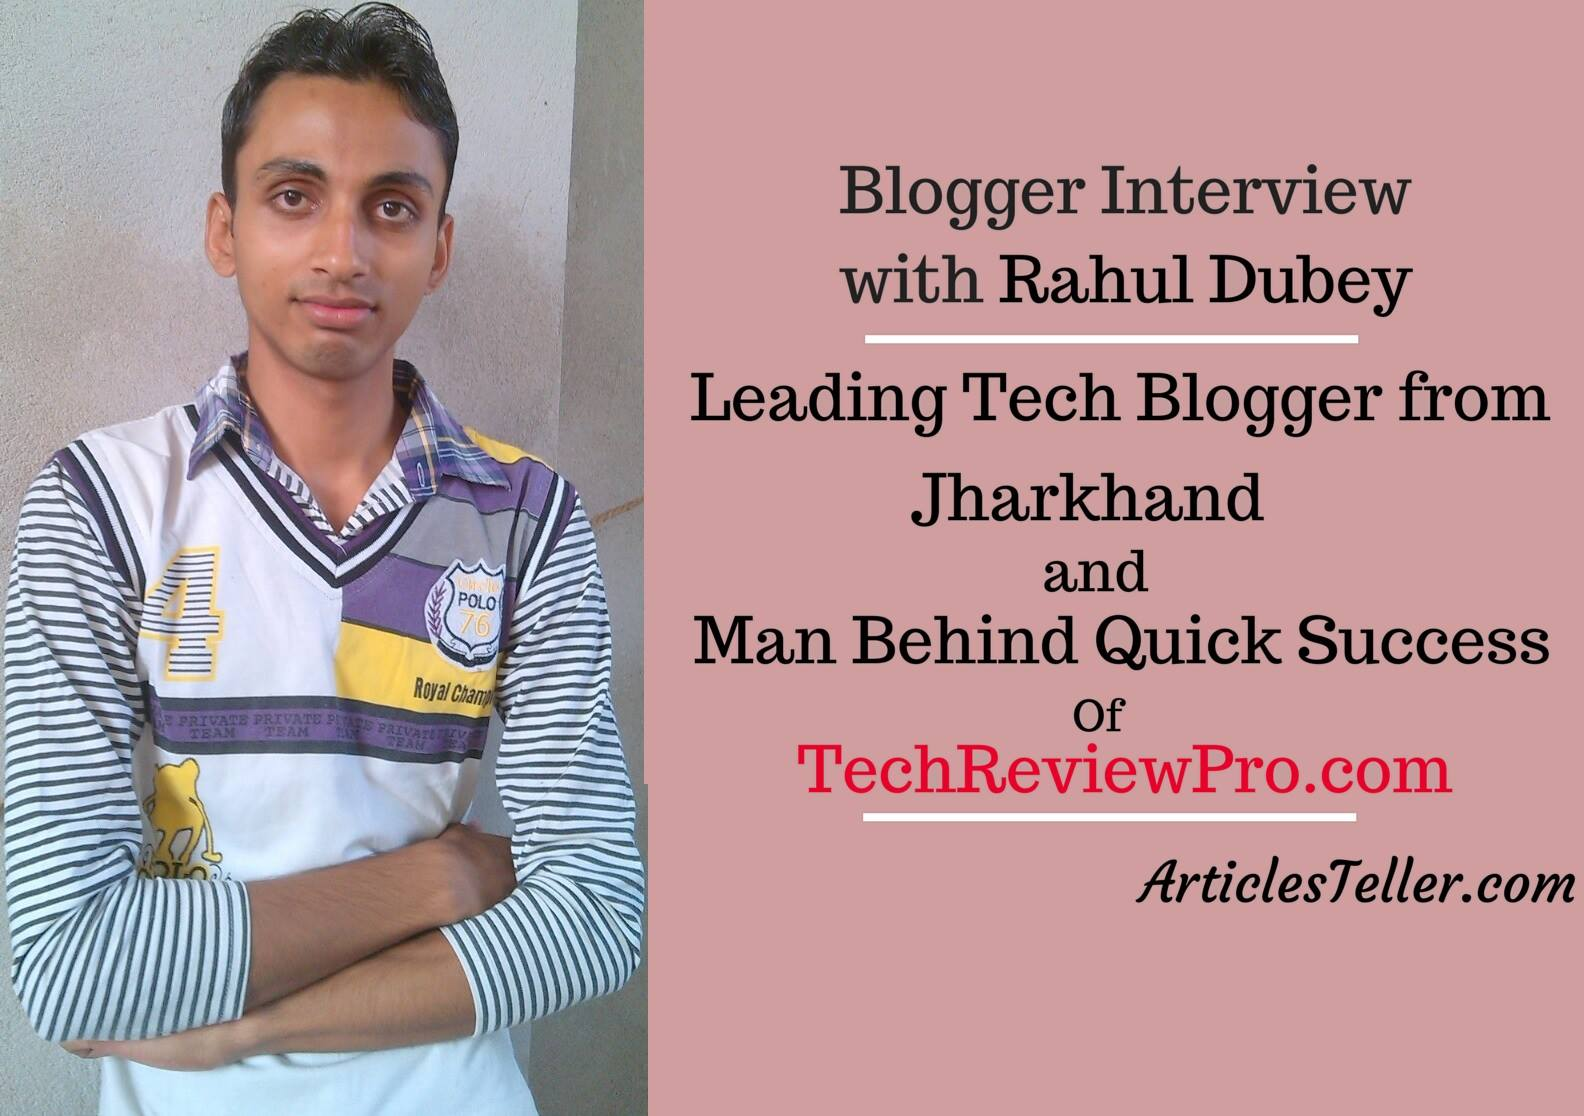 Blogger Interview with Rahul Dubey - Founder and Owner of TechReviewPro